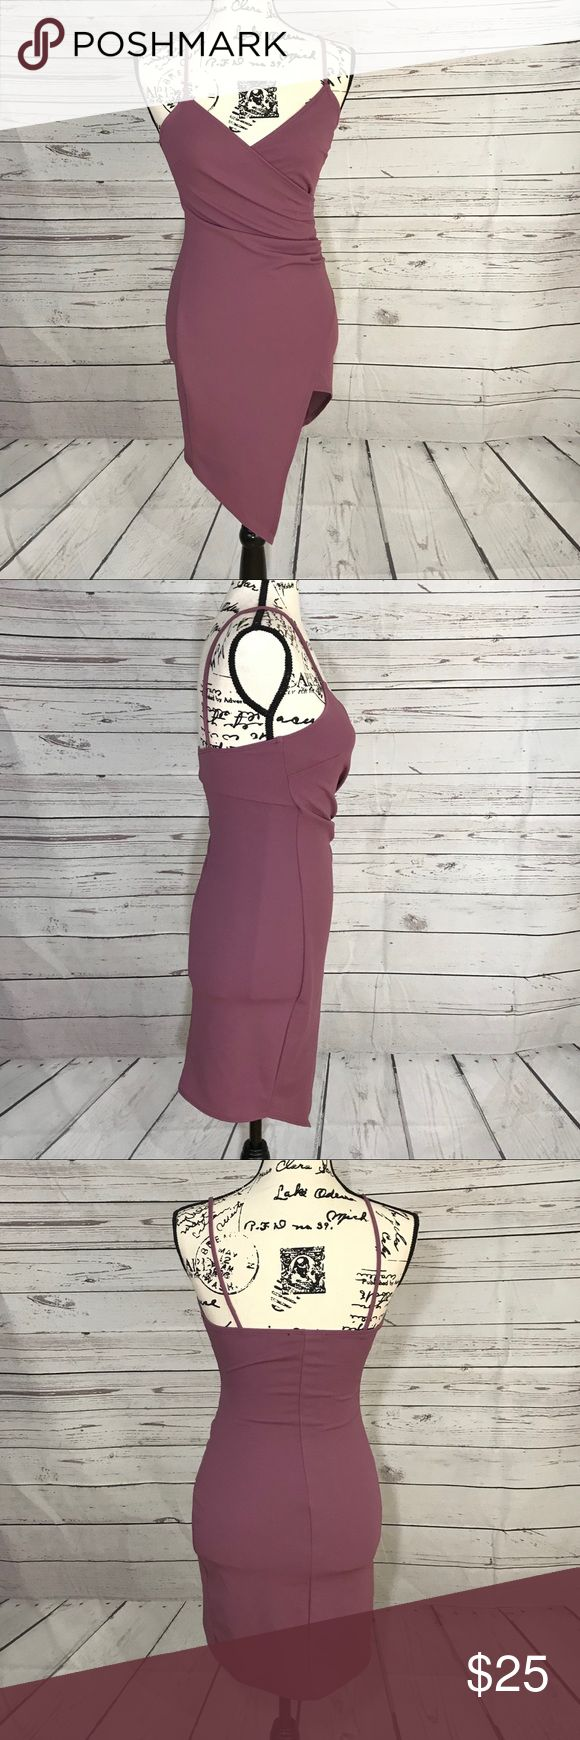 NWOT Love Culture Wrap Style Asymmetrical Bodycon Love culture asymmetrical wrap style mini dress. Super short on the short side of the skirt. Plunging v-neck. This dress is super sexy and perfect for all semi formal occasions or date nights. In a light plum color this is a stunner. Form fitting with some stretch. Brand new and never worn. Measurements coming soon. Love Culture Dresses Asymmetrical